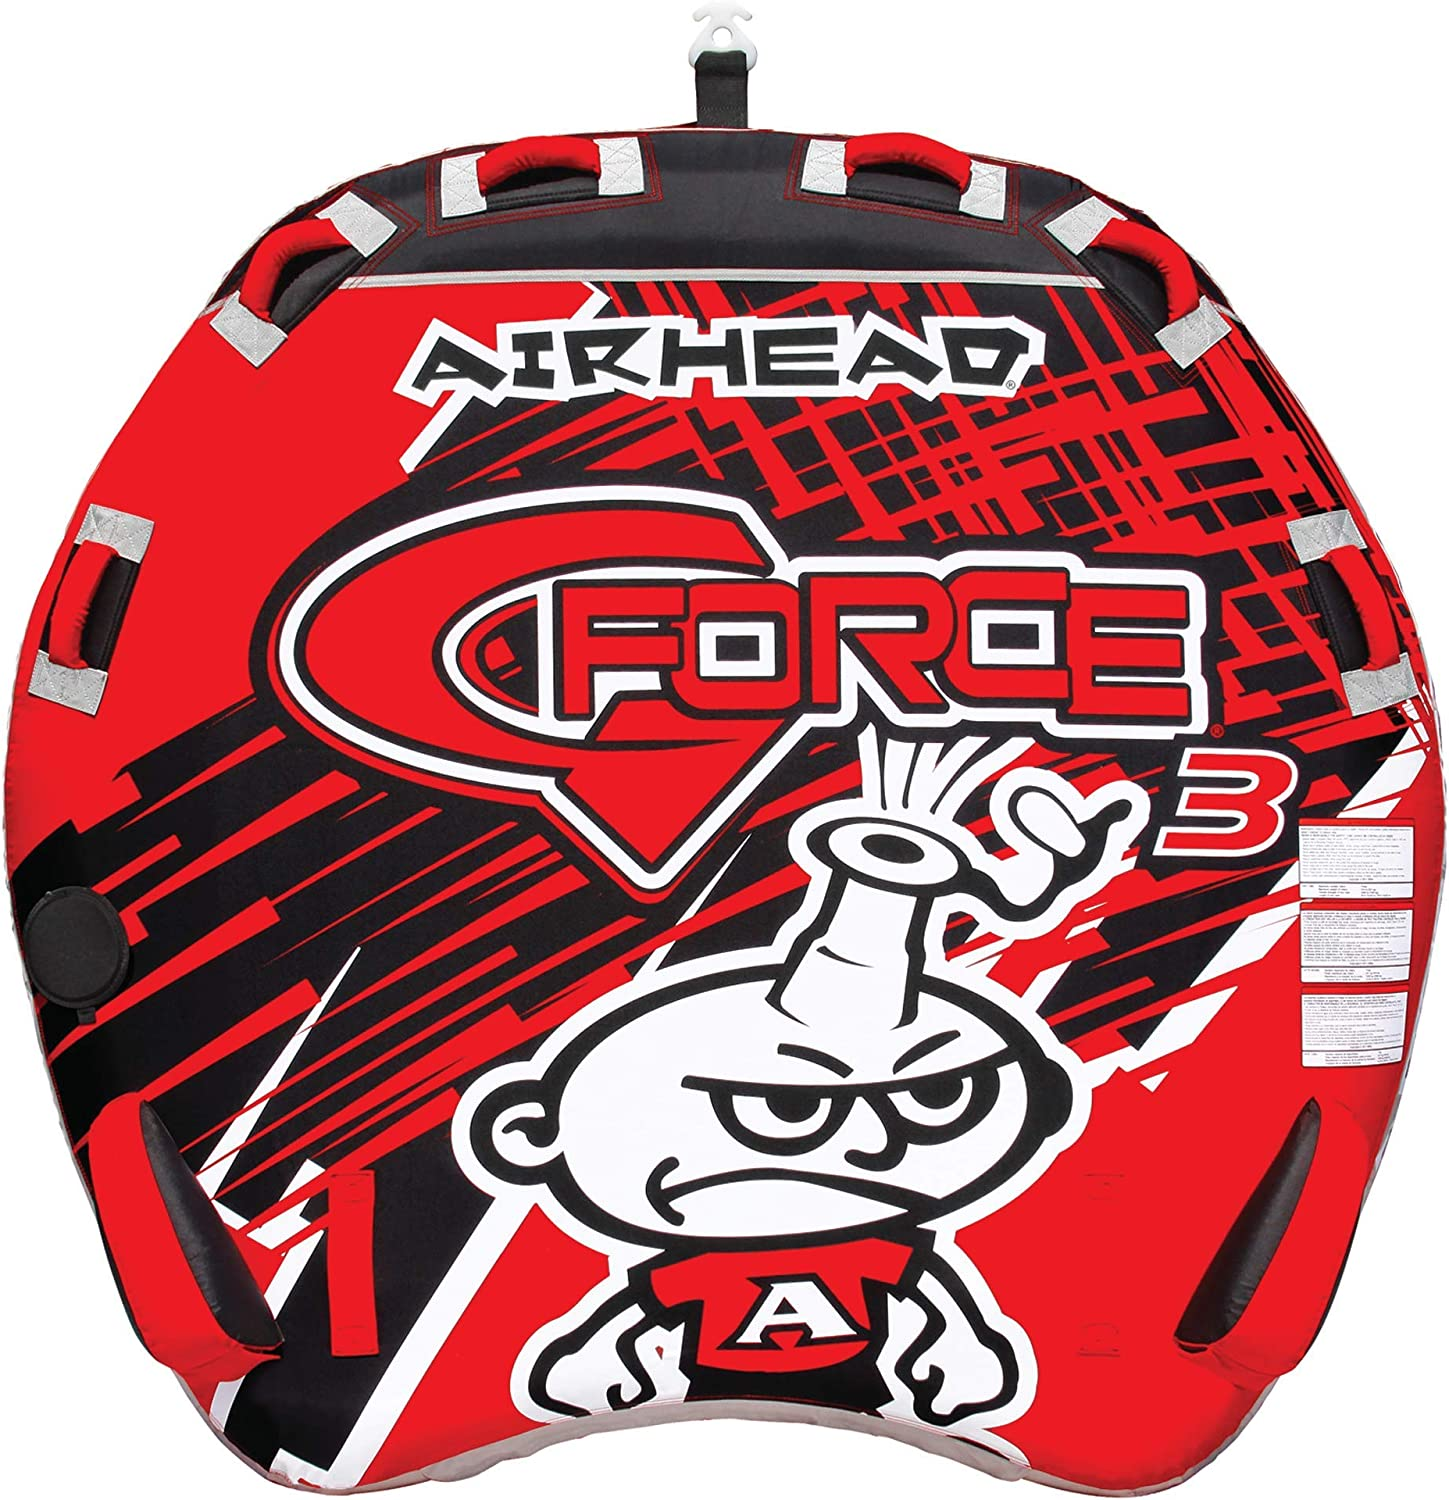 Airhead G-Force Selling and selling Towable Tube security for 1-4 Rider Options Boating with